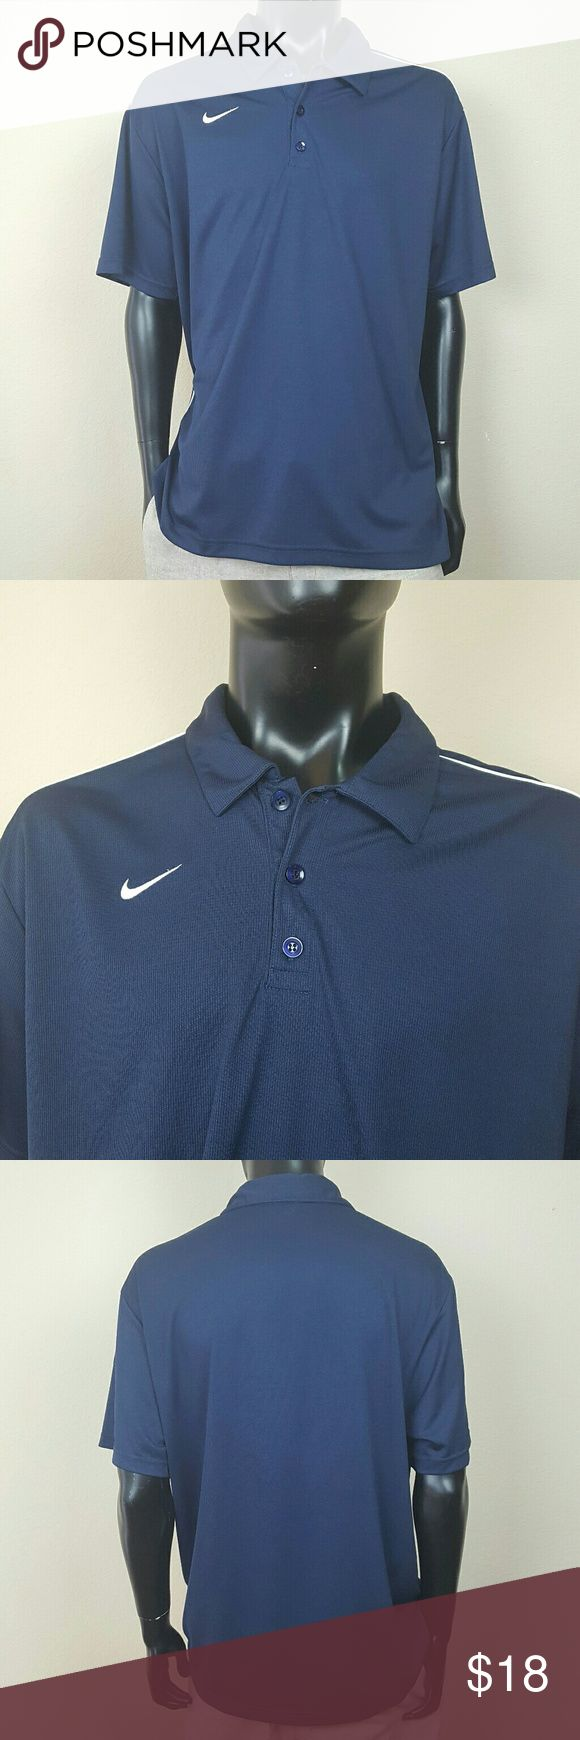 Nike Polo Dallas Cowboys Navy Blue Good Used Condition. Nike short sleeve Navy Blue Polo shirt with white swoosh & piping on the shoulders & down the sides. Small snag on the left sleeve (pictured). Navy Blue buttons. Great fan gear to cheer on your favorite navy colored NFL or NCAA team. ie: Dallas Cowboys, Penn State, Navy, Arizona, or even Notre Dame. Great price for what you're getting. If you spill a beer on it at the tailgate,? No worries, it's 100% polyester soft it's machine…